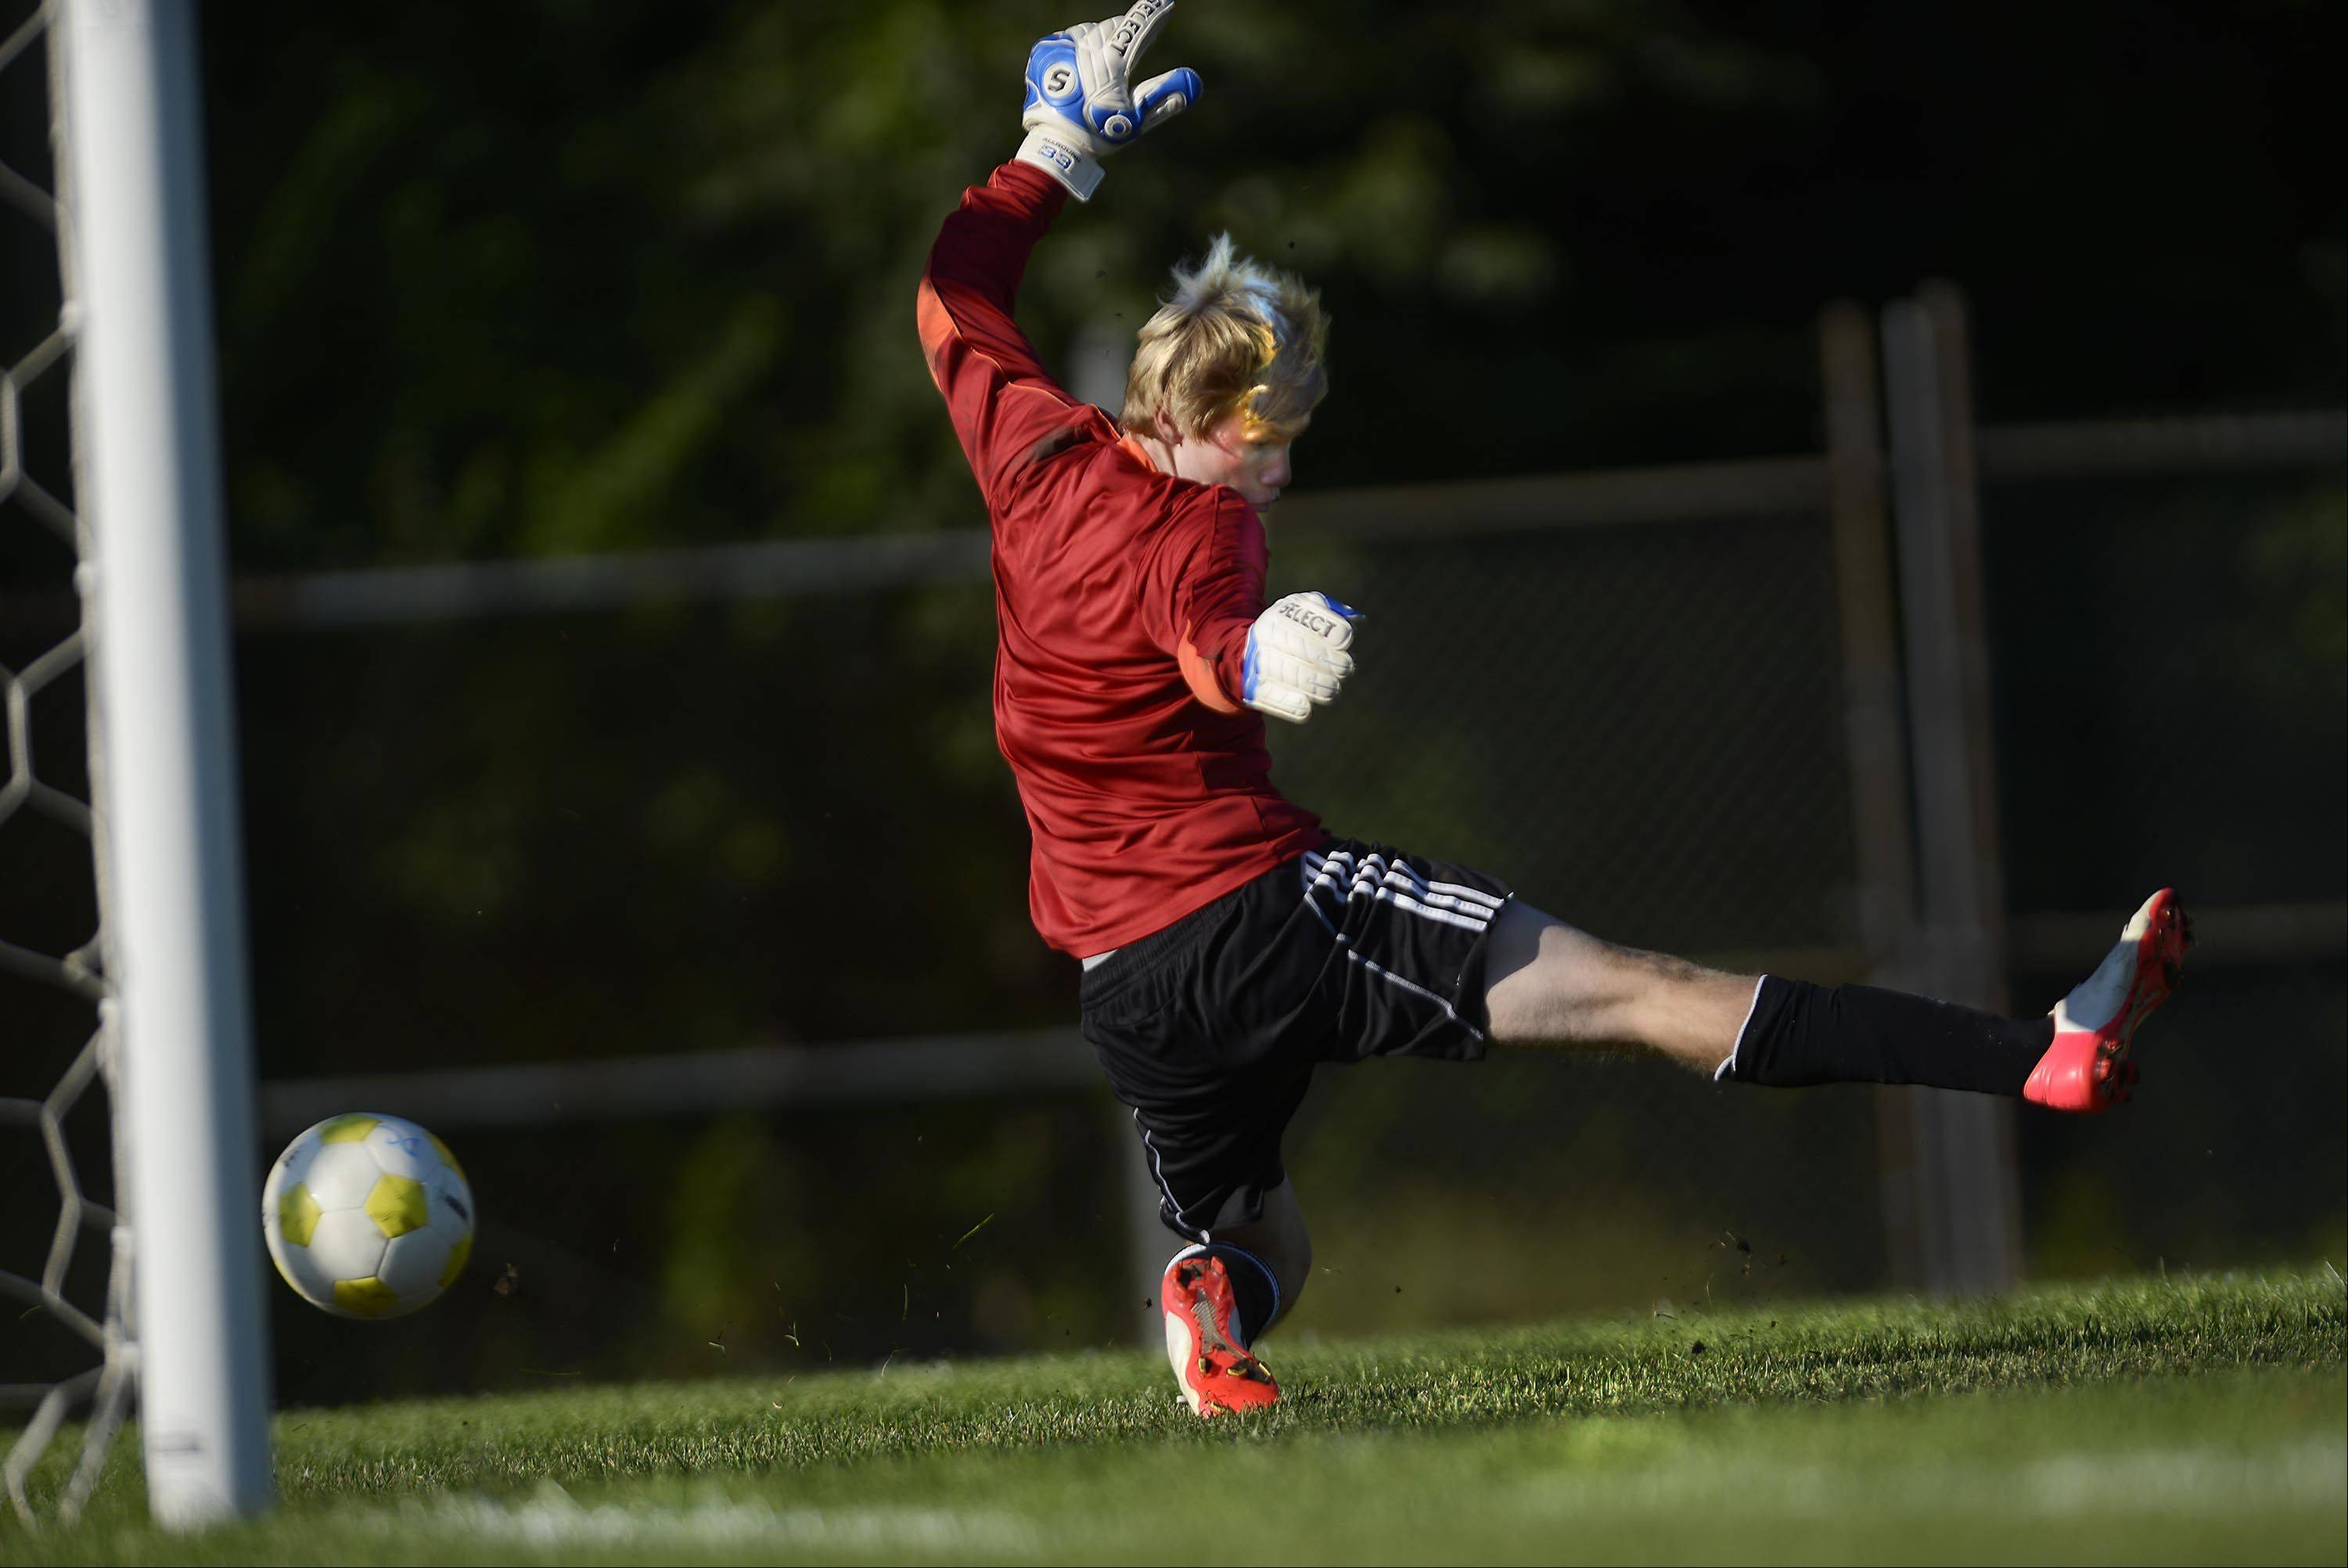 Hampshire goalkeeper Andy Pederson can't reach a shot by Dundee-Crown's Salvador Rodriguez that reached the back of the net Thursday in Carpentersville.